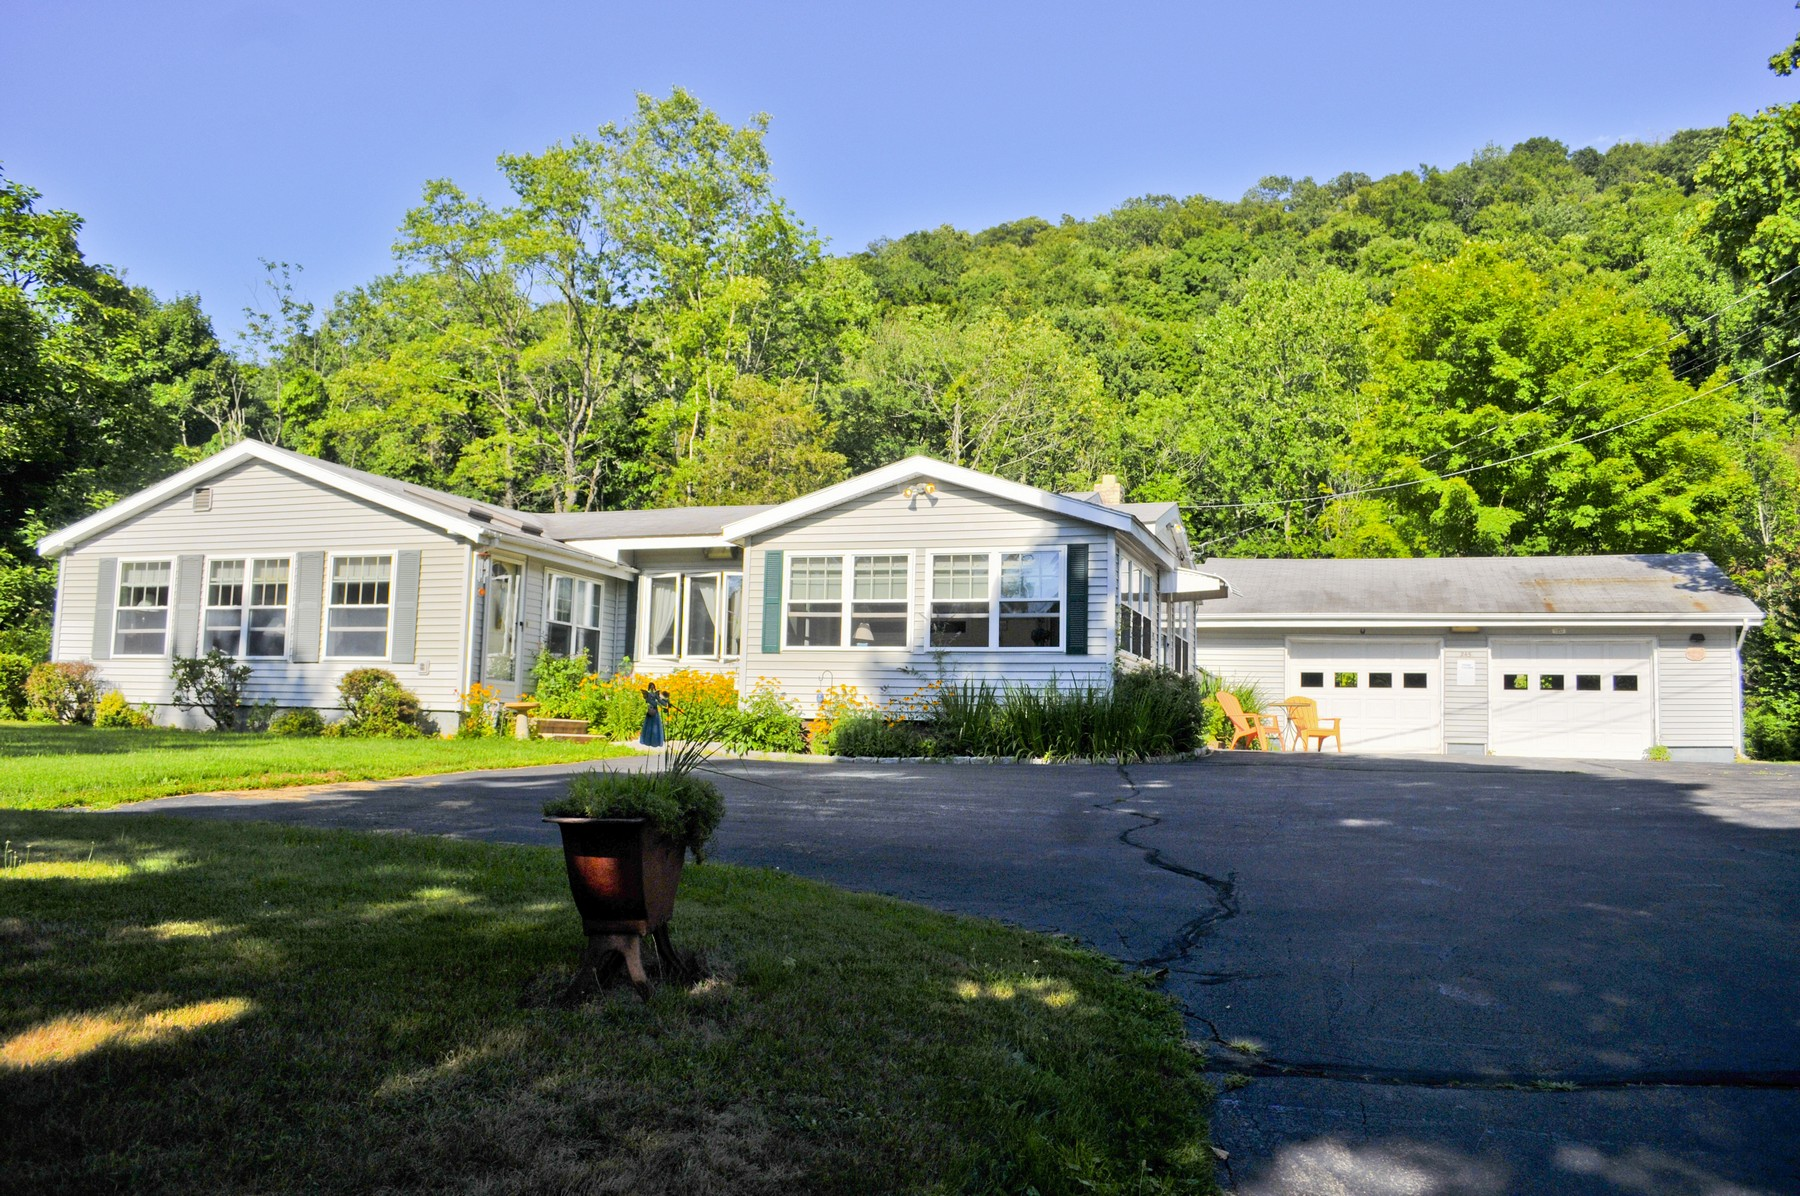 Single Family Home for Sale at 245 Forest Rd North Branford, Connecticut, 06472 United States